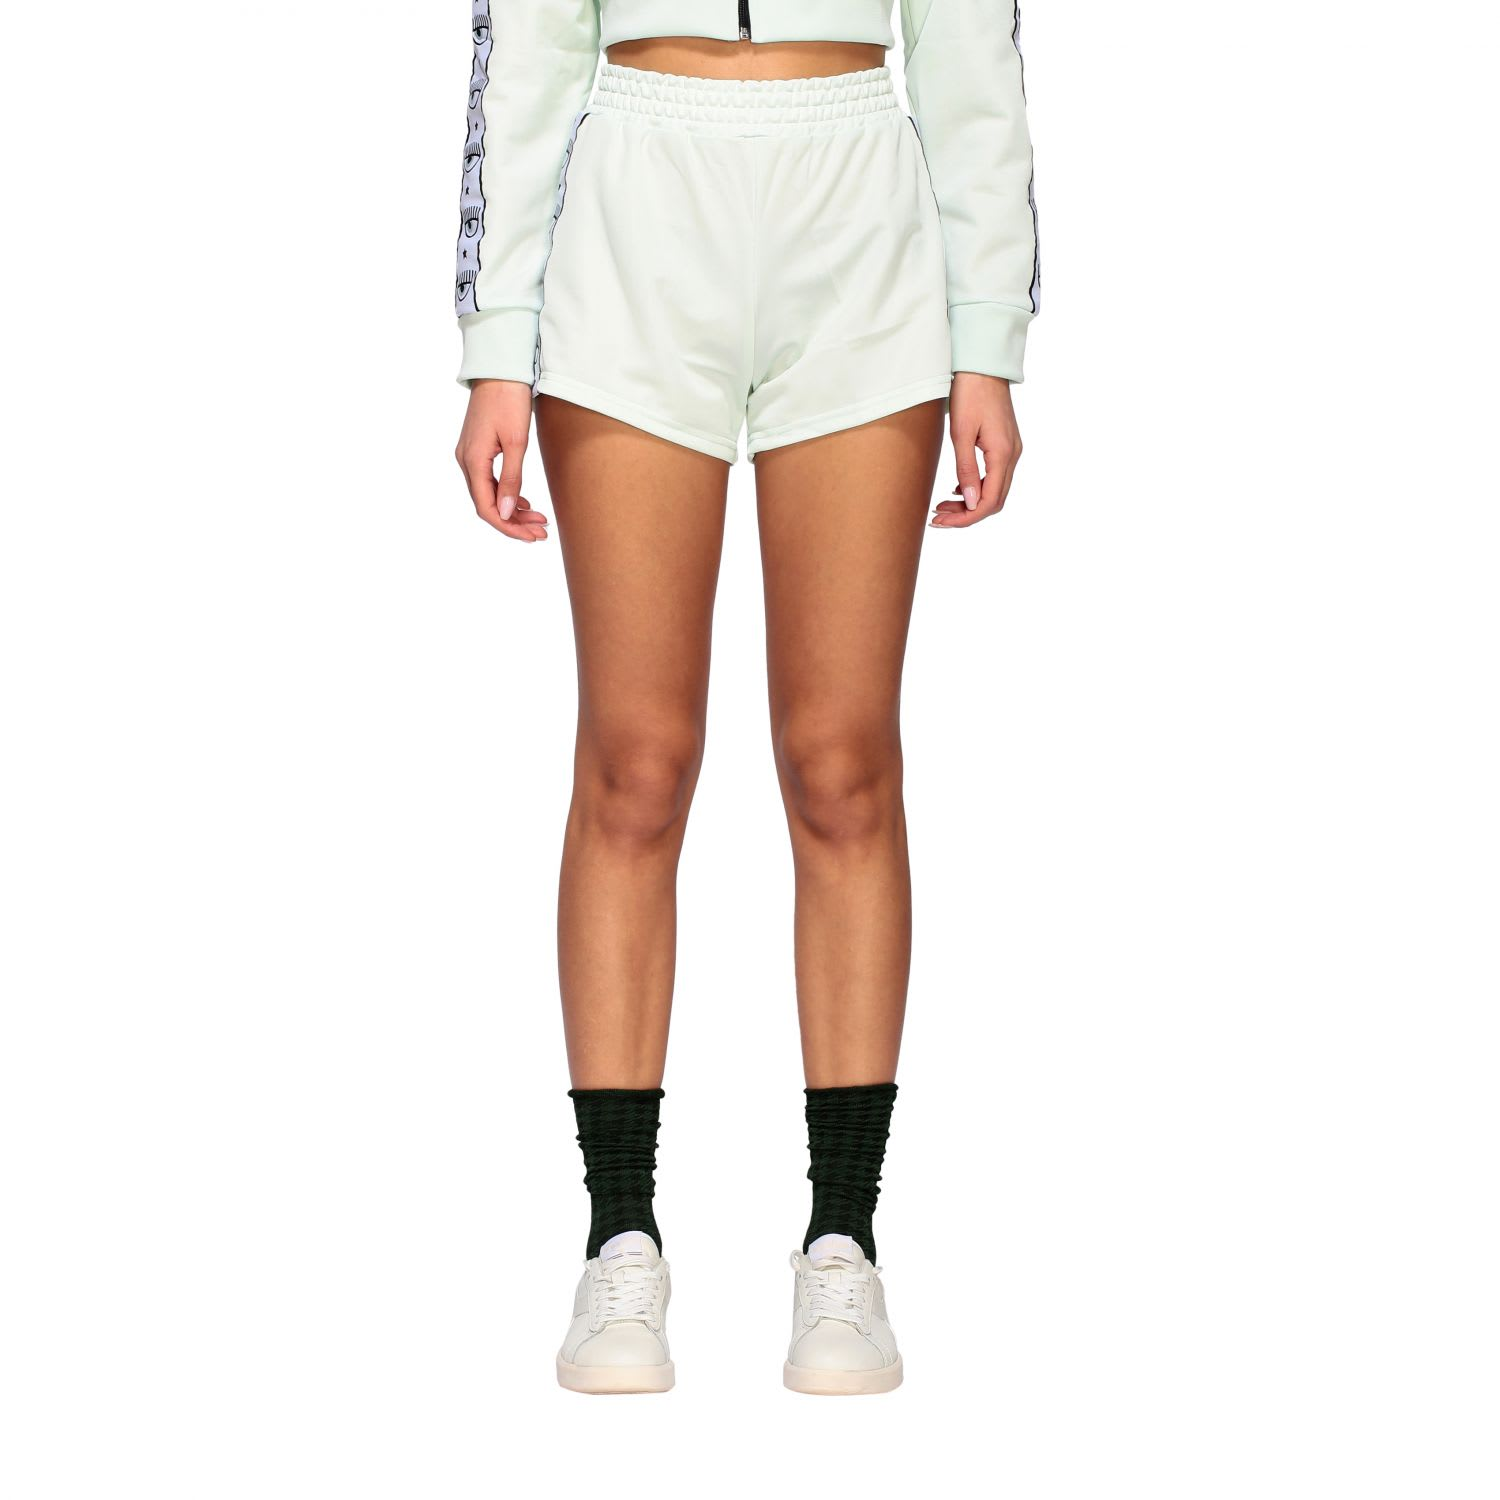 Chiara Ferragni Acetate Shorts With Logoed Bands In Mint